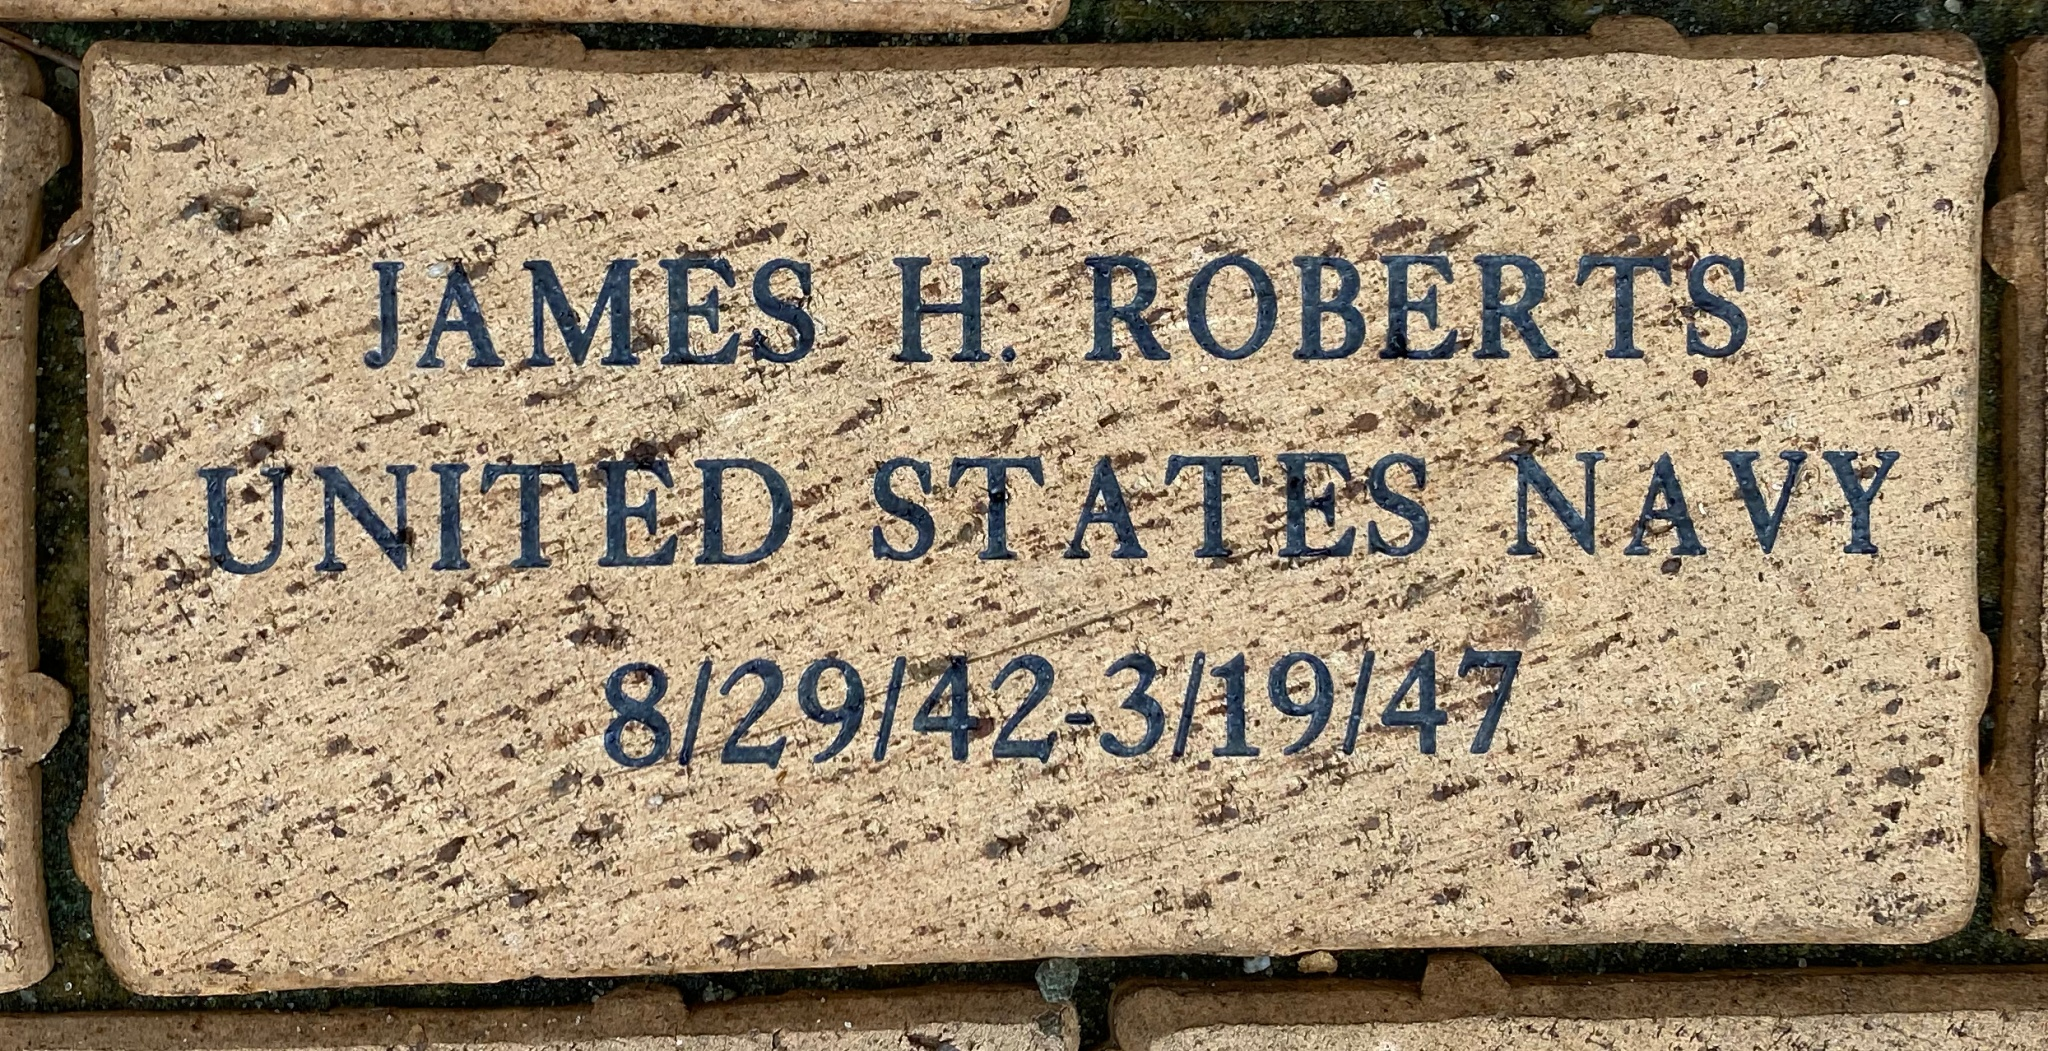 JAMES H. ROBERTS UNITED STATES NAVY 8/29/42-3/19/47